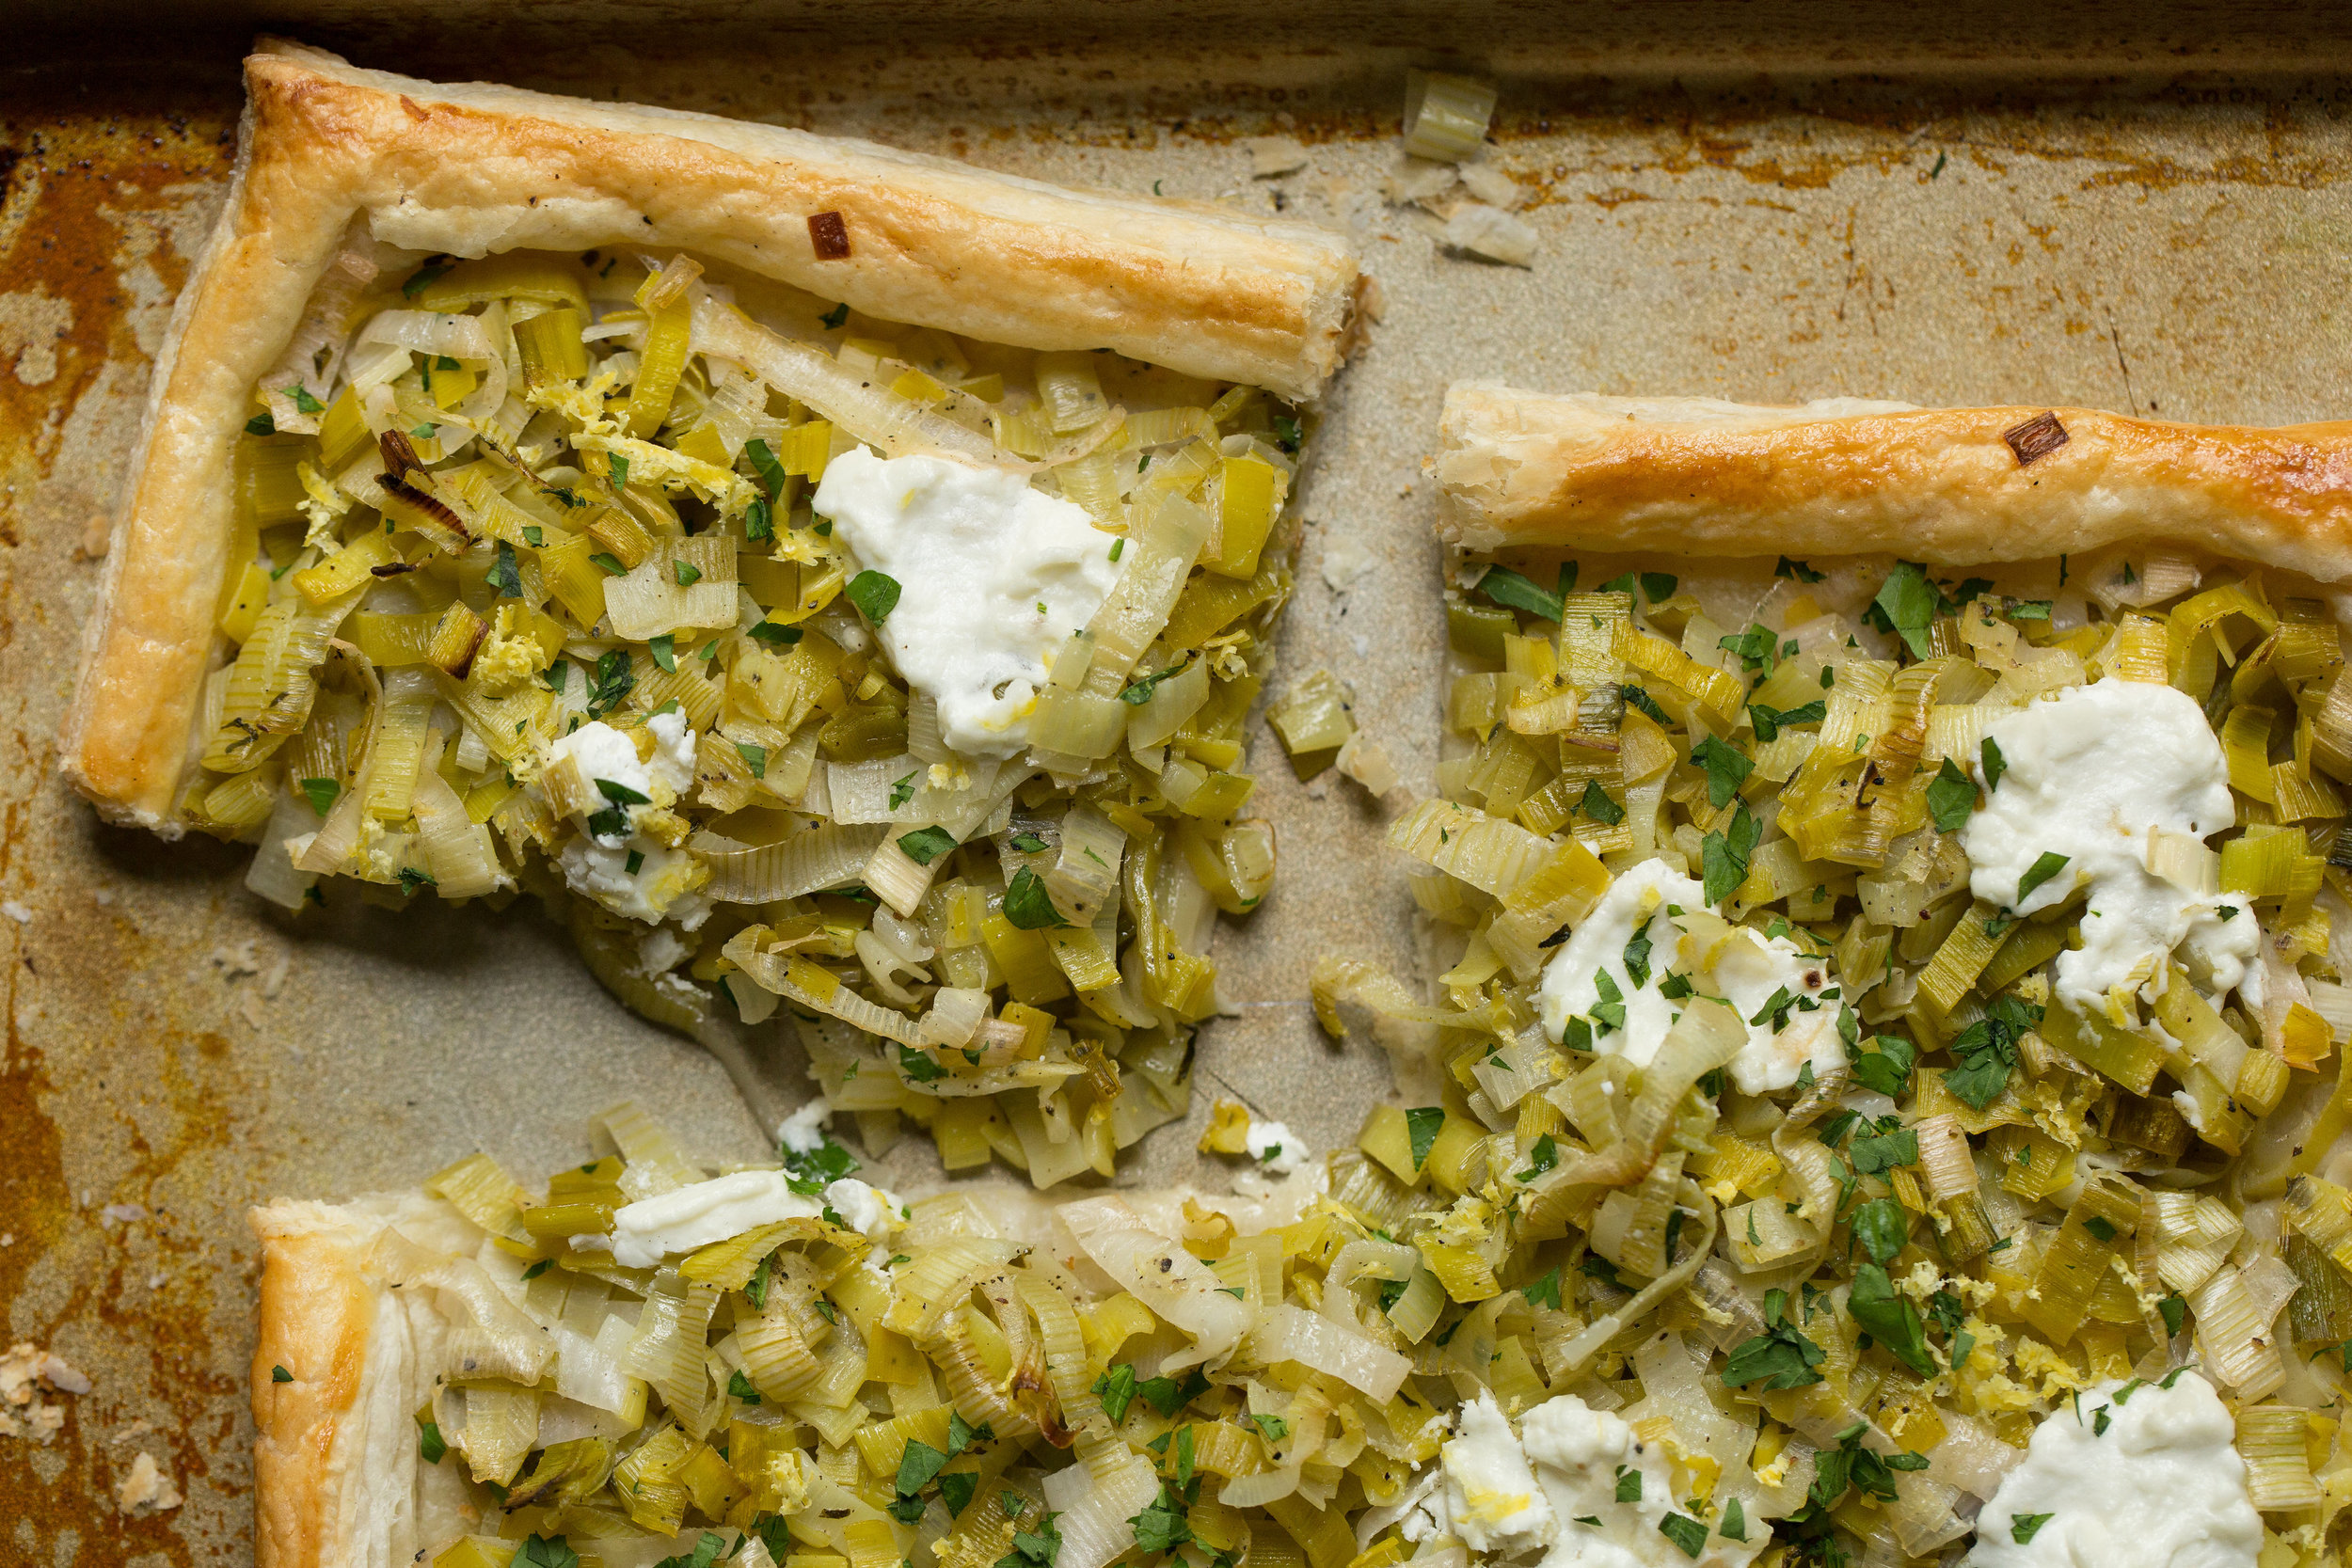 Using farm fresh veggies this vegetarian recipe for a Leek and Goat Cheese tart is great for picnics and potlucks. Find the recipe on CTEatsOut.com